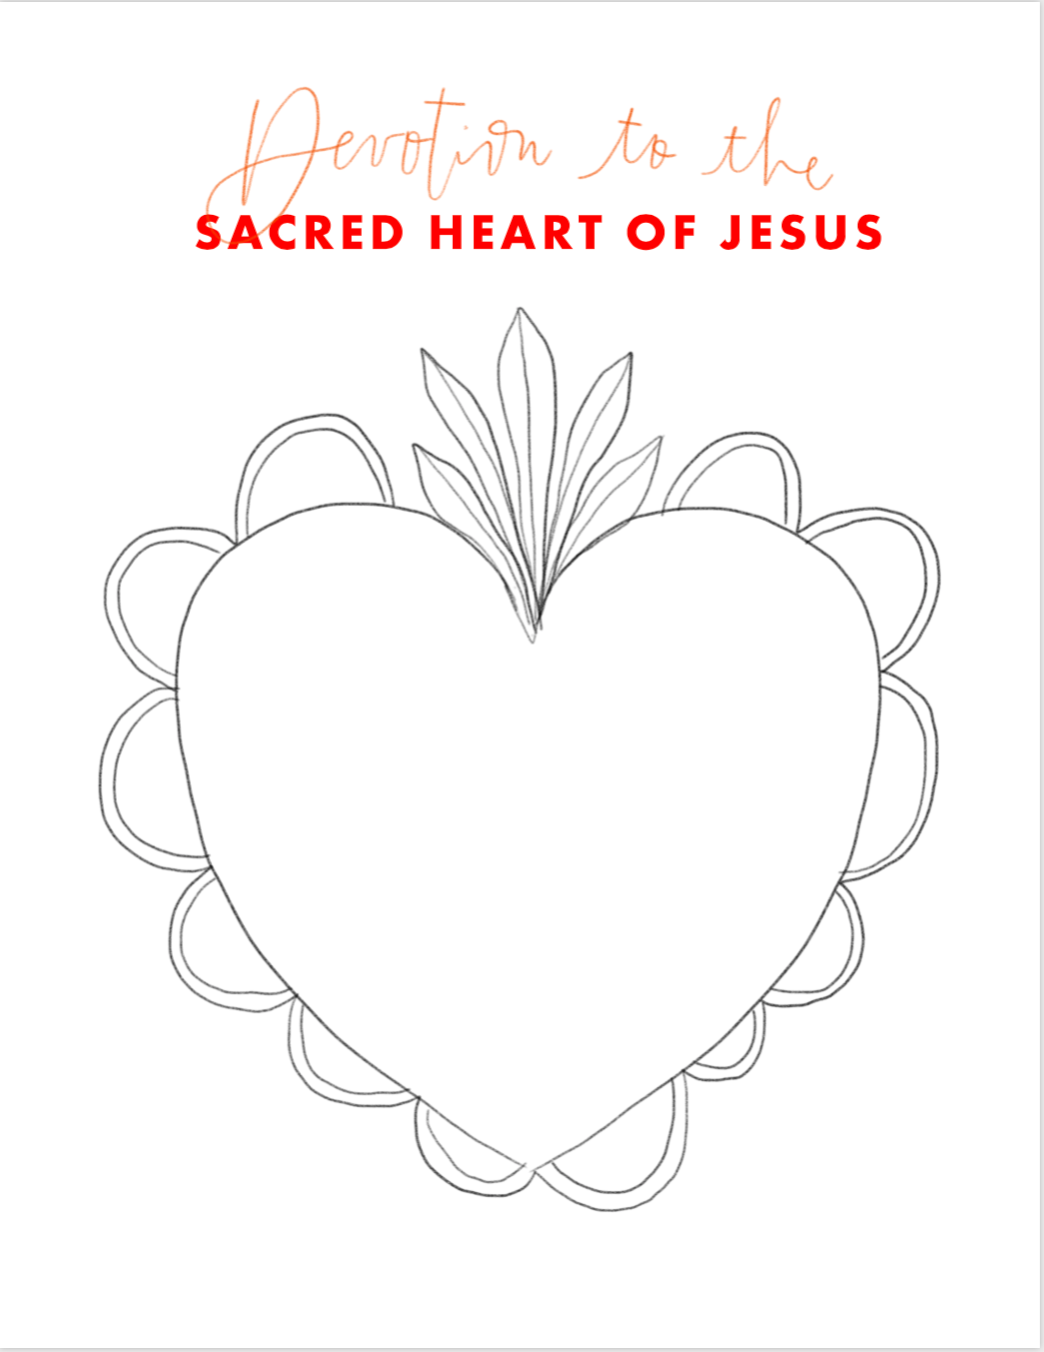 Devotion to the Sacred Heart of Jesus Coloring Page